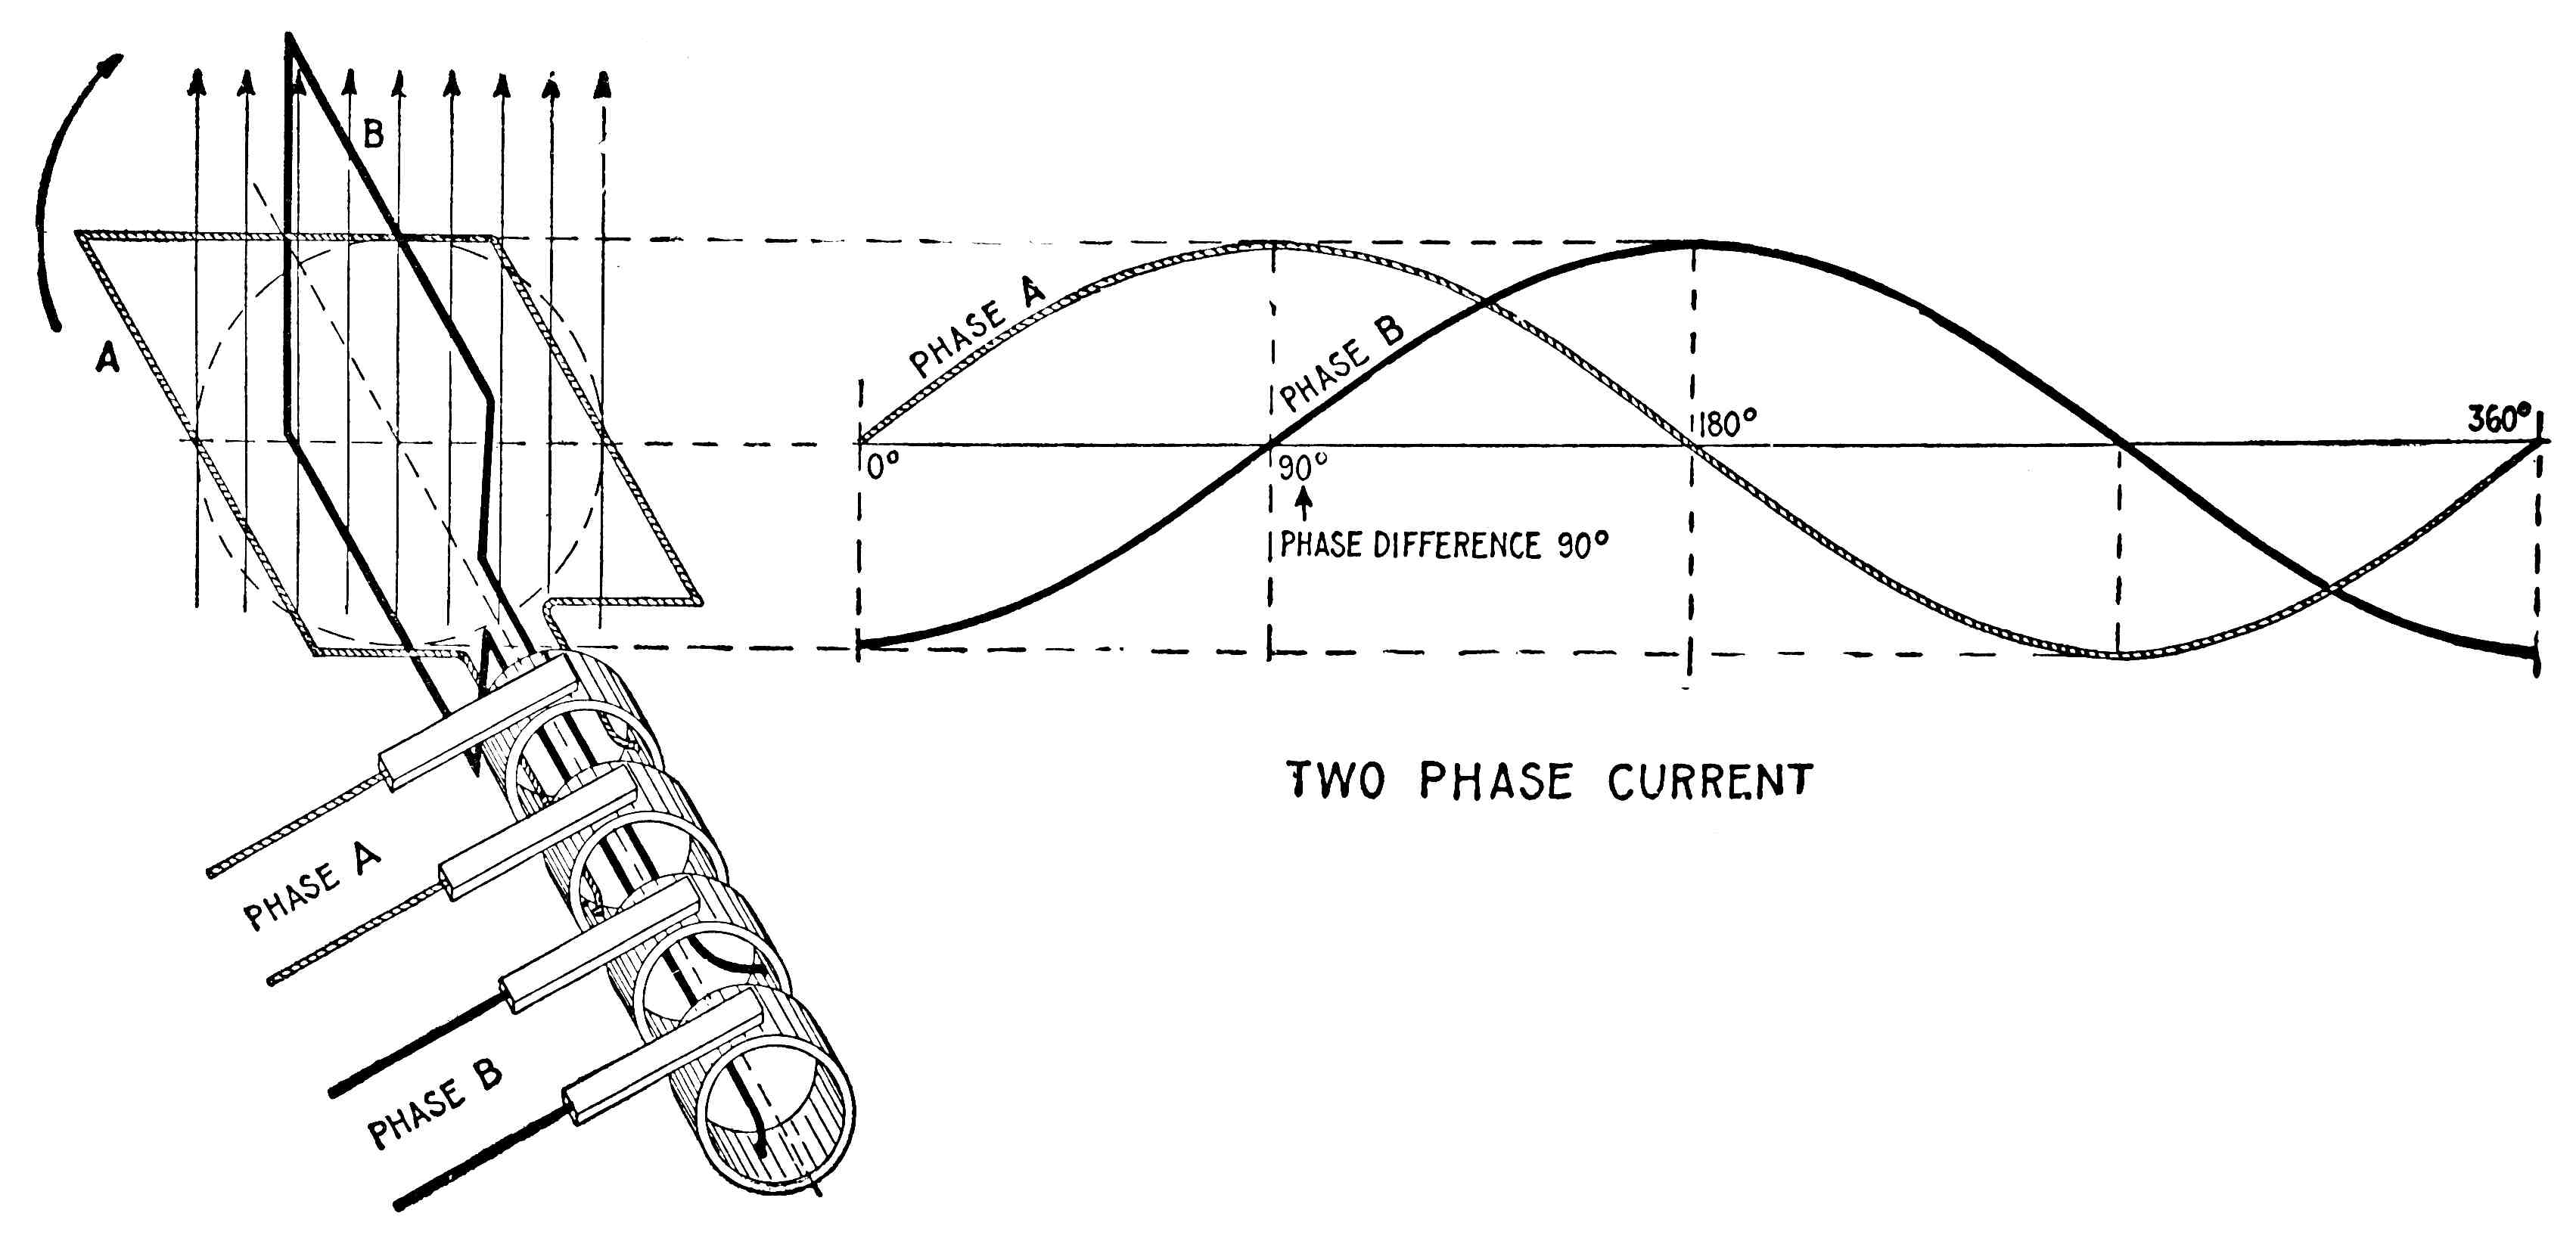 two-phase electric power